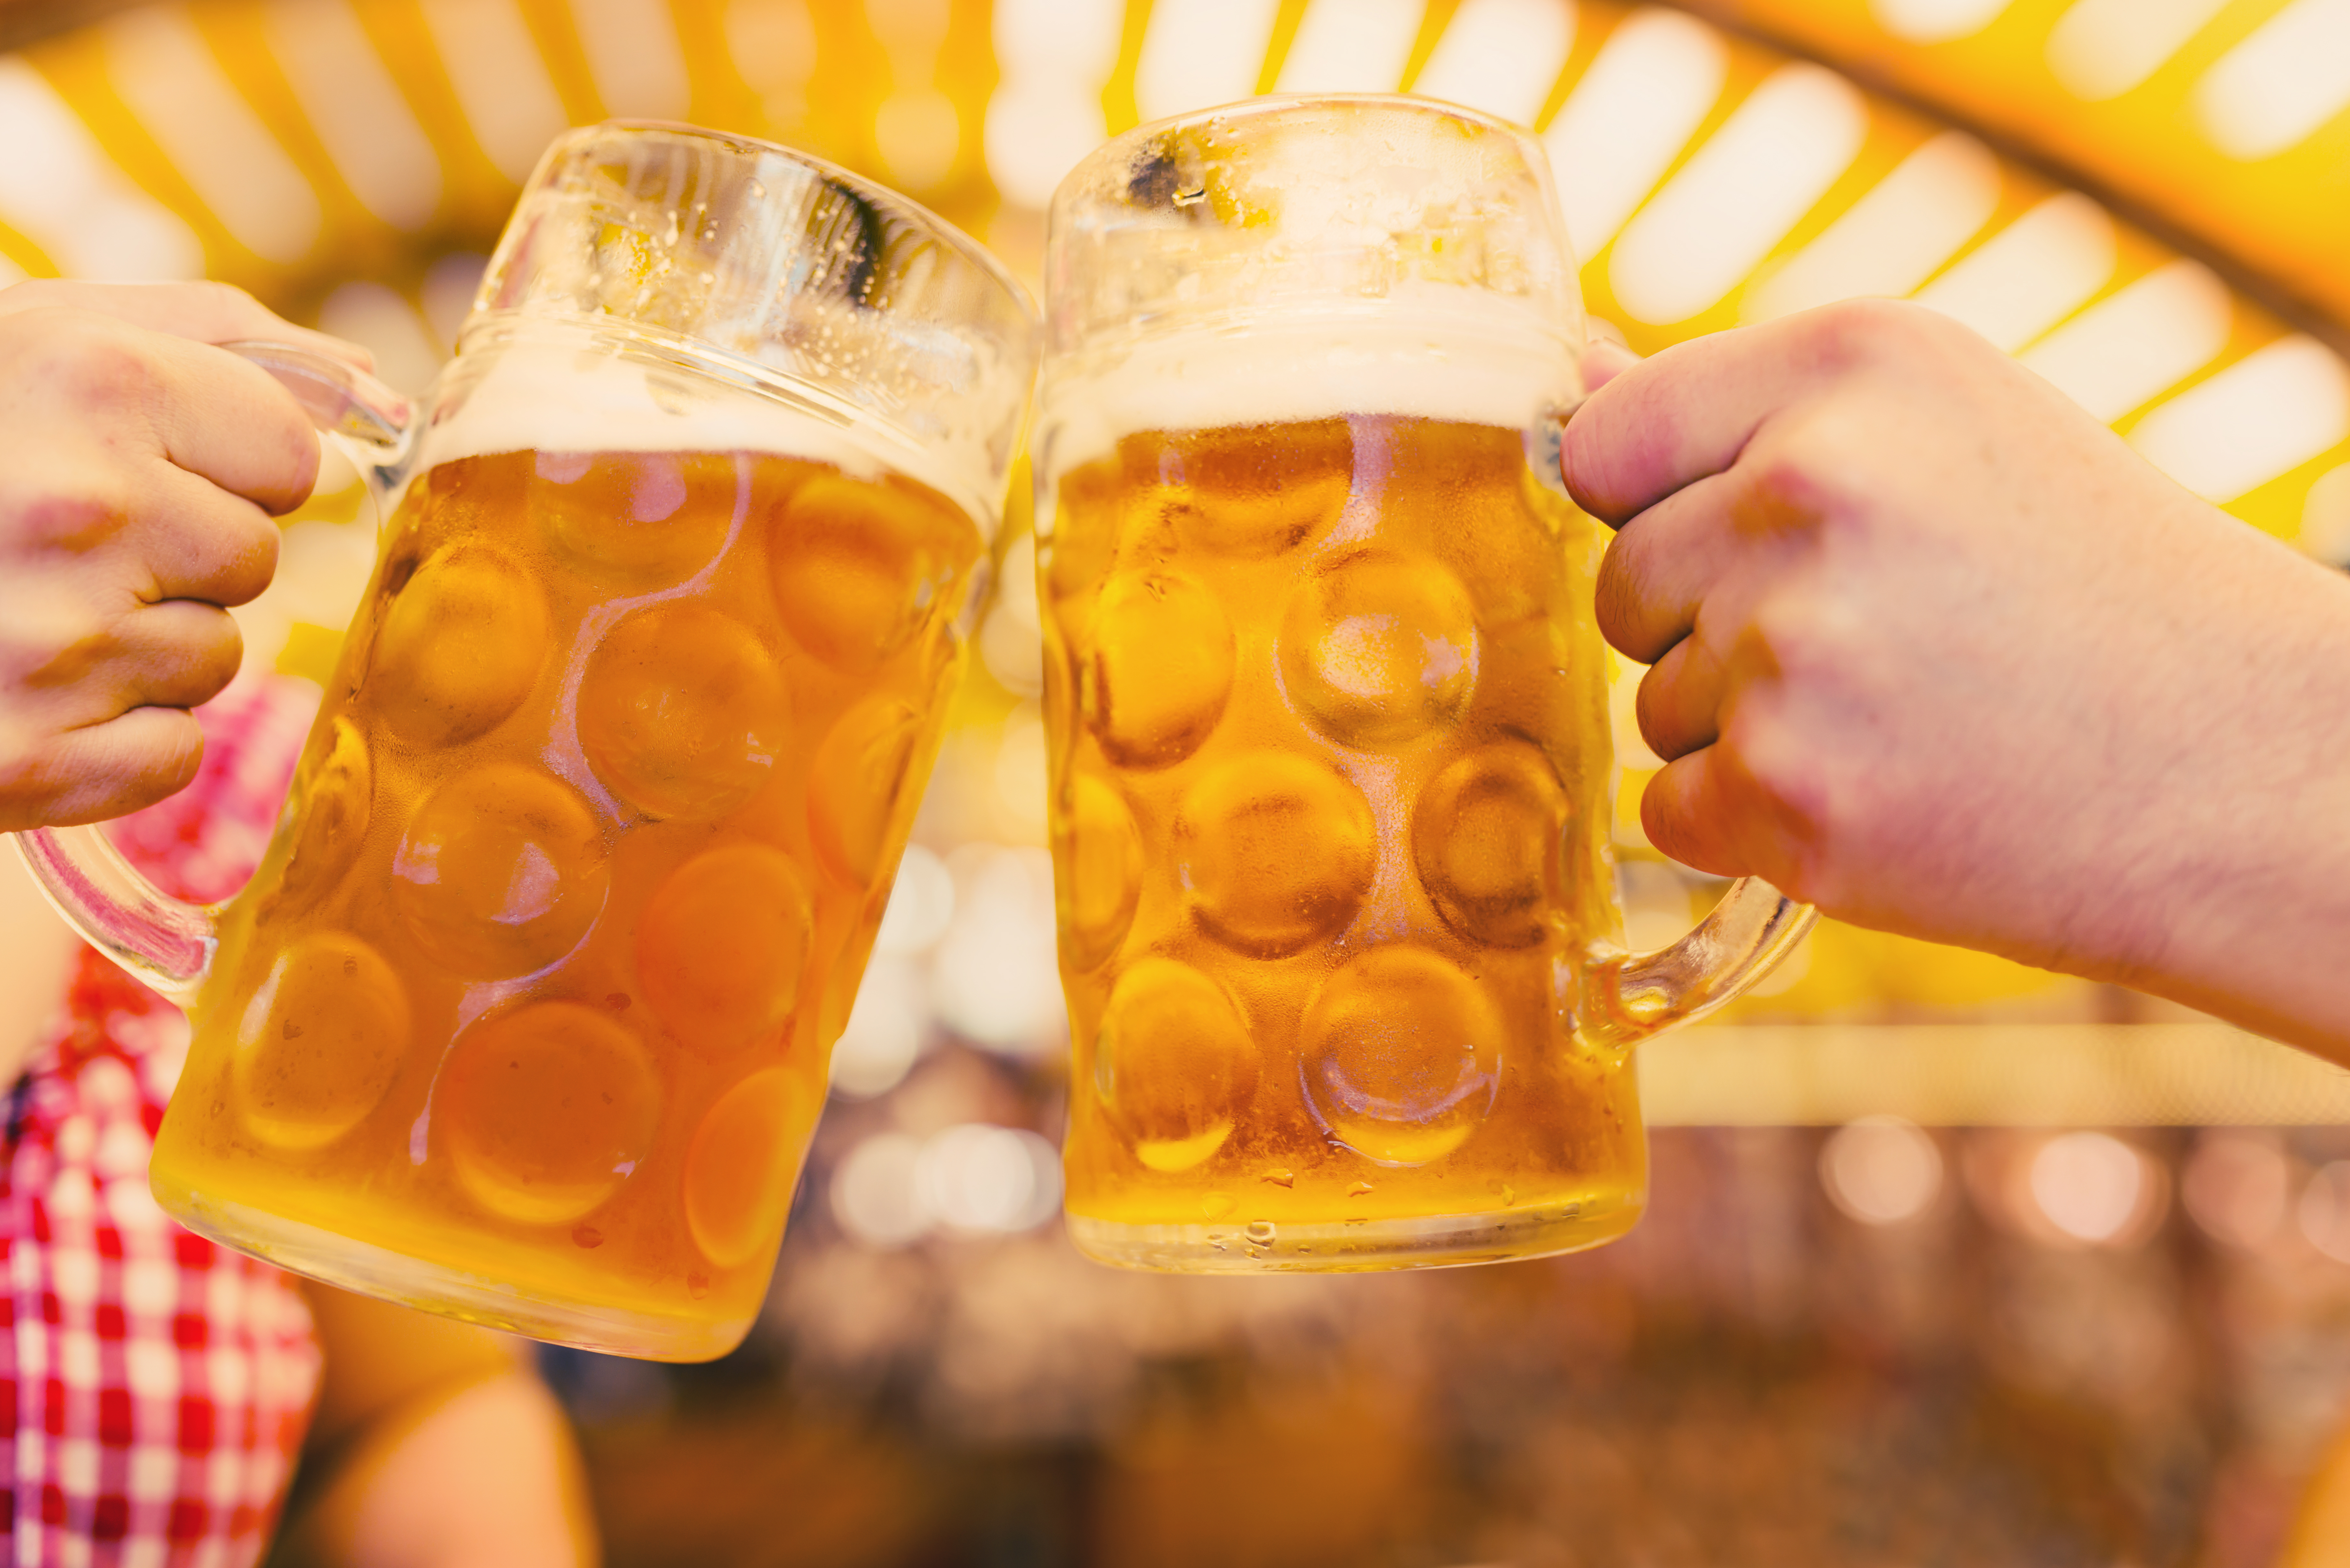 A stock photo of two beer steins clinking